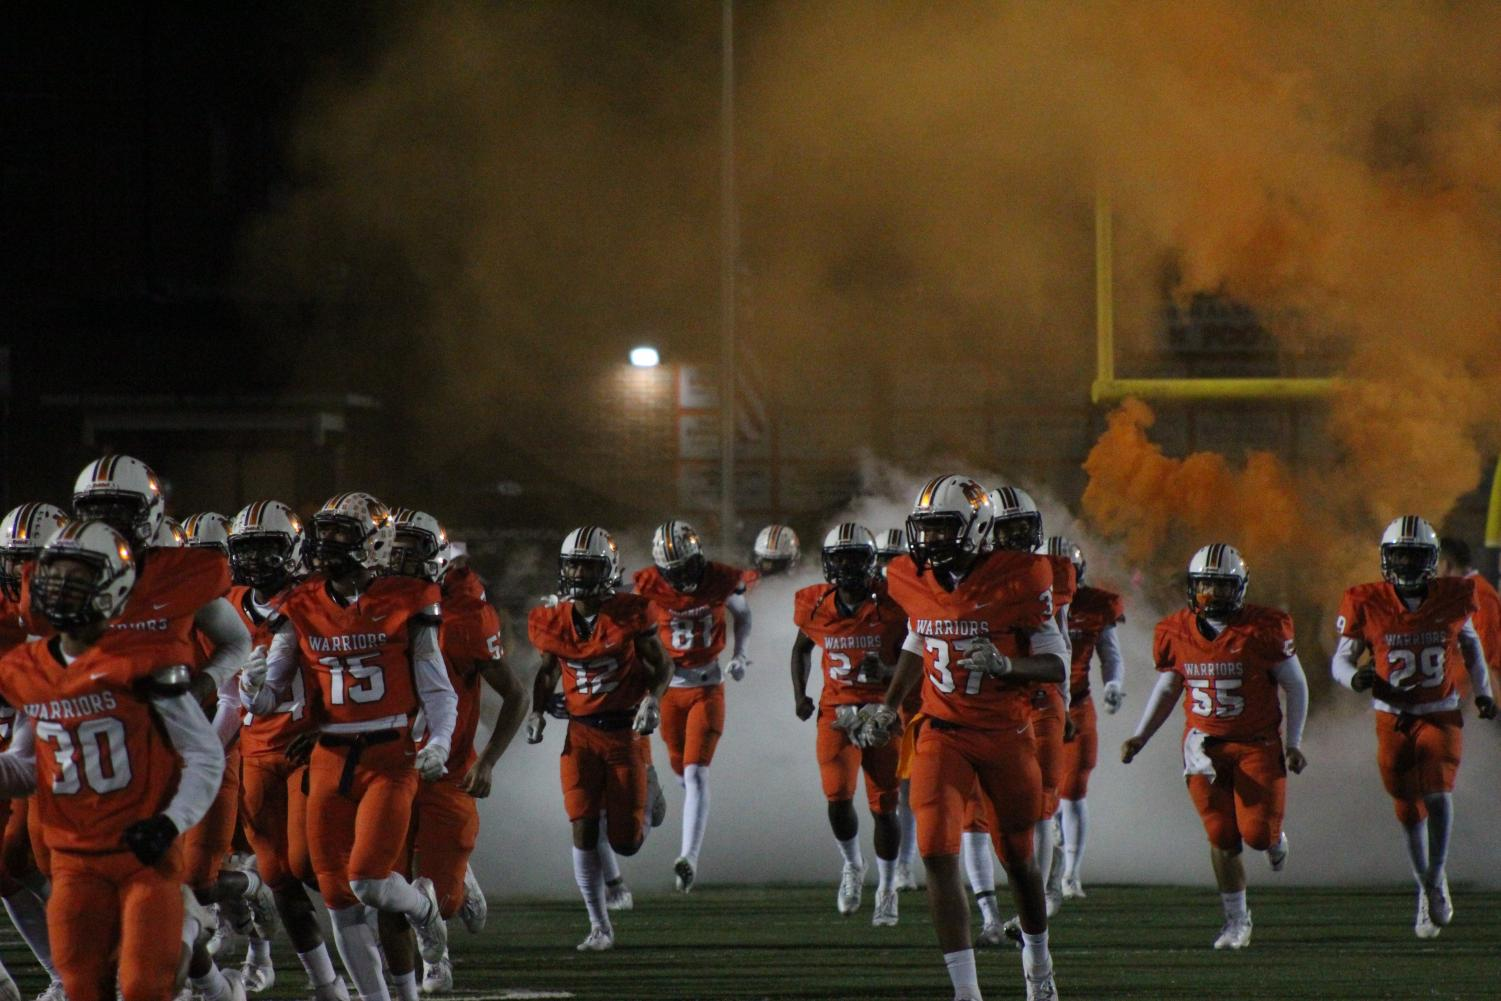 The NC varsity football team runs through the NC banner making the crowd excited. Orange and white smoke surround the players as they jump and cheer while preparing to beat North Paulding.